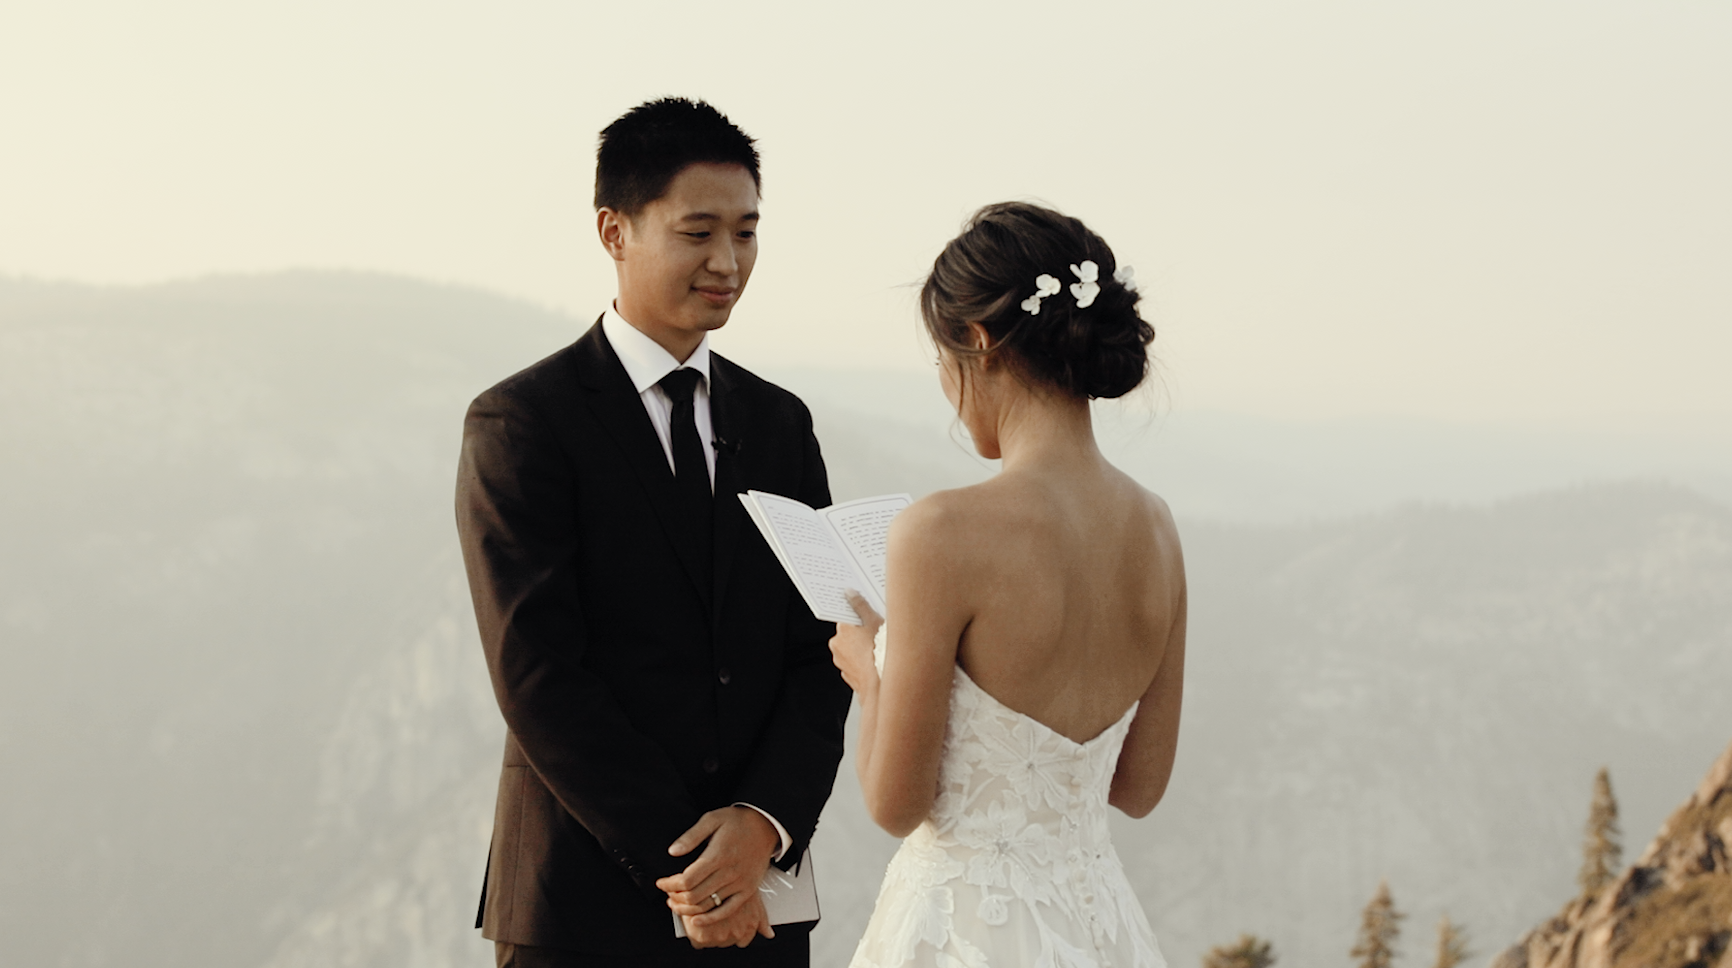 Couple exchanging vows in mountain elopement